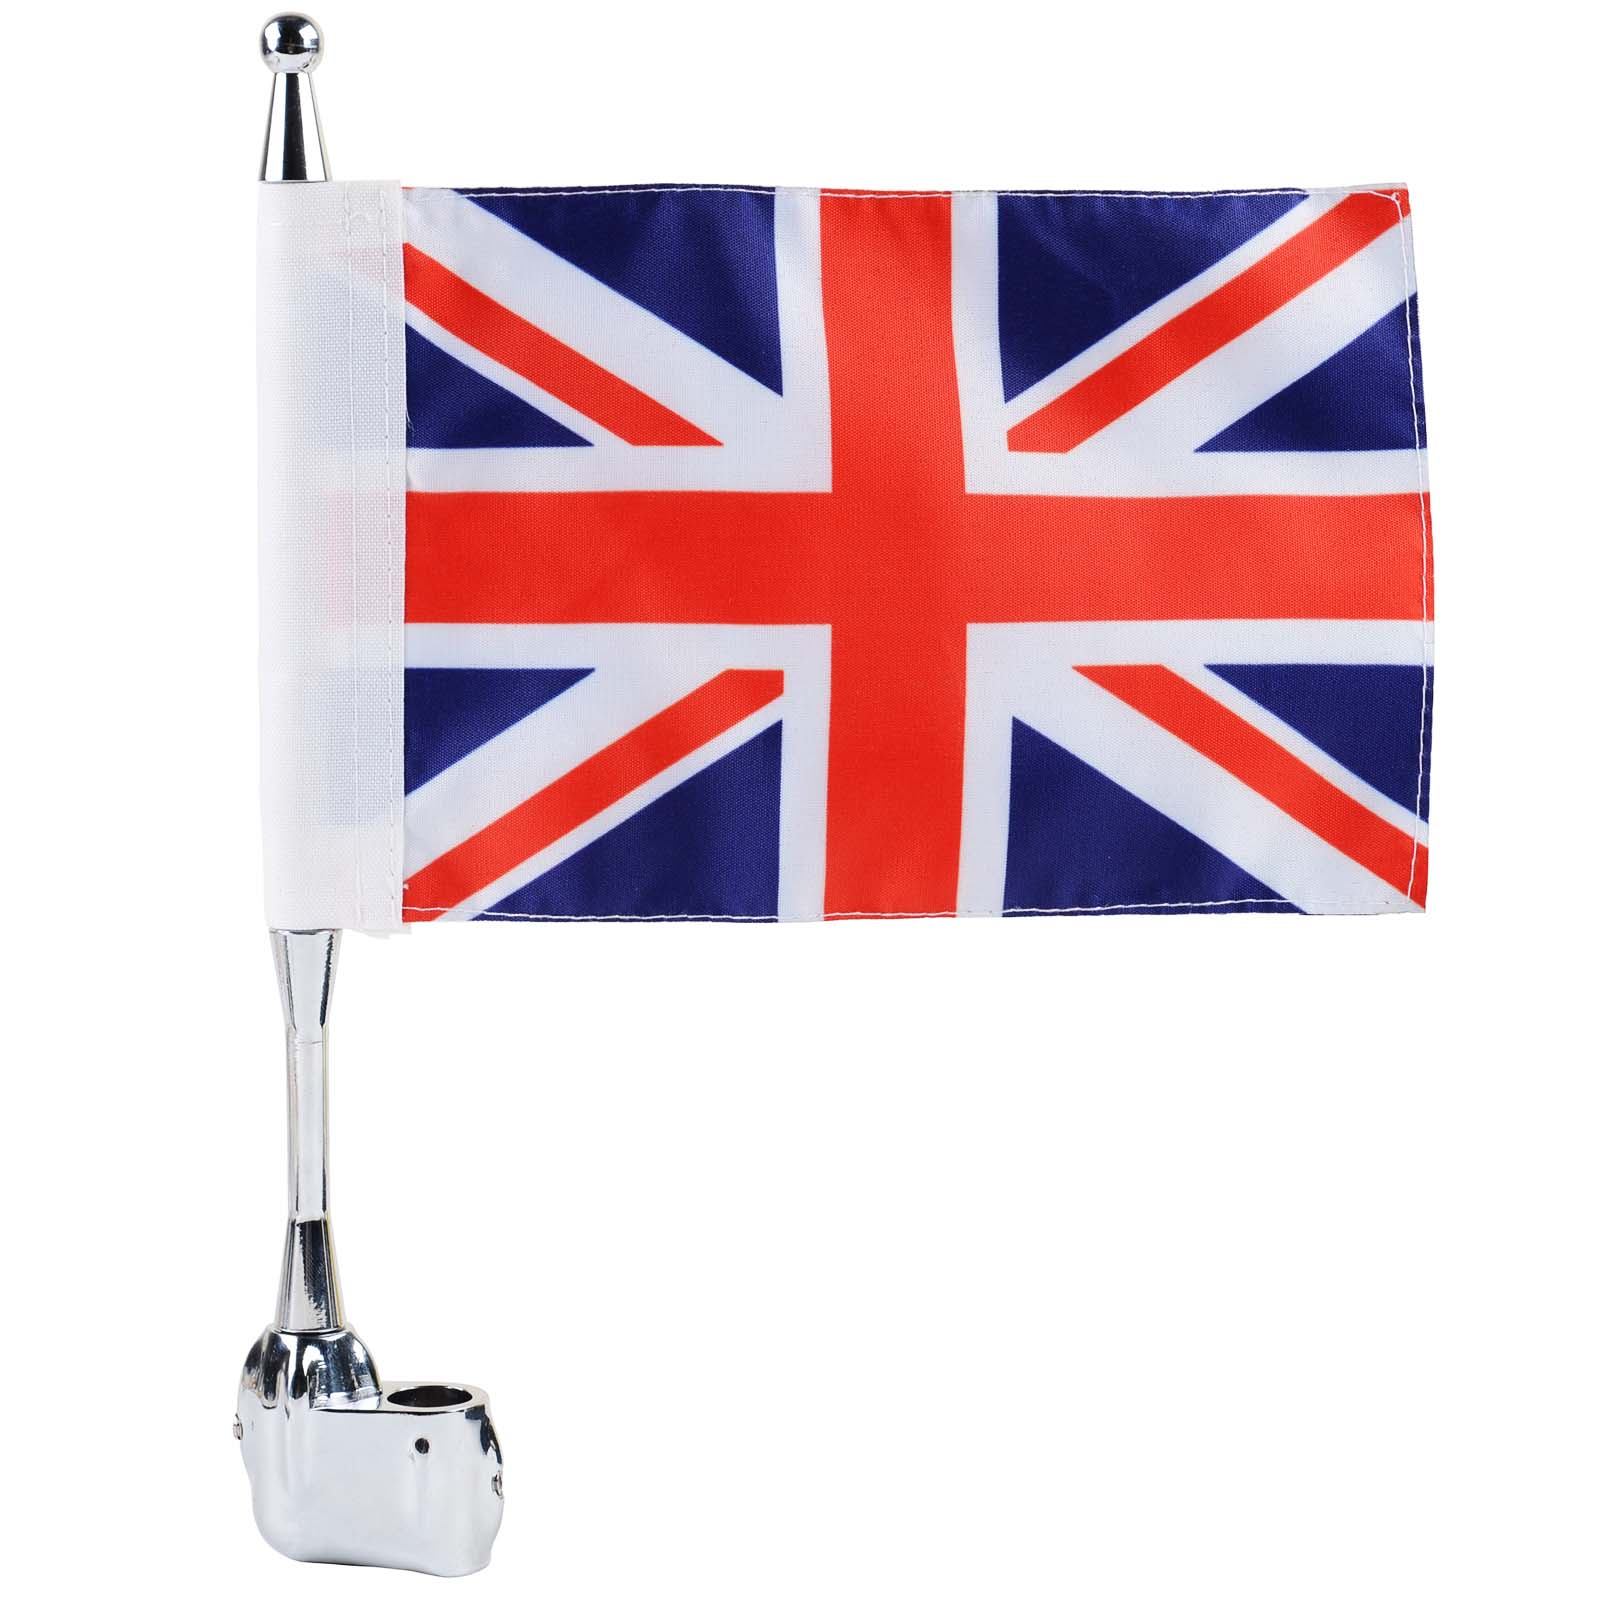 Luggage Rack Flag Pole Luggage Rack Vertical Britain Flag Pole for Honda GoldWing GL1800 GL1500 GL1200 2001-2011 luggage